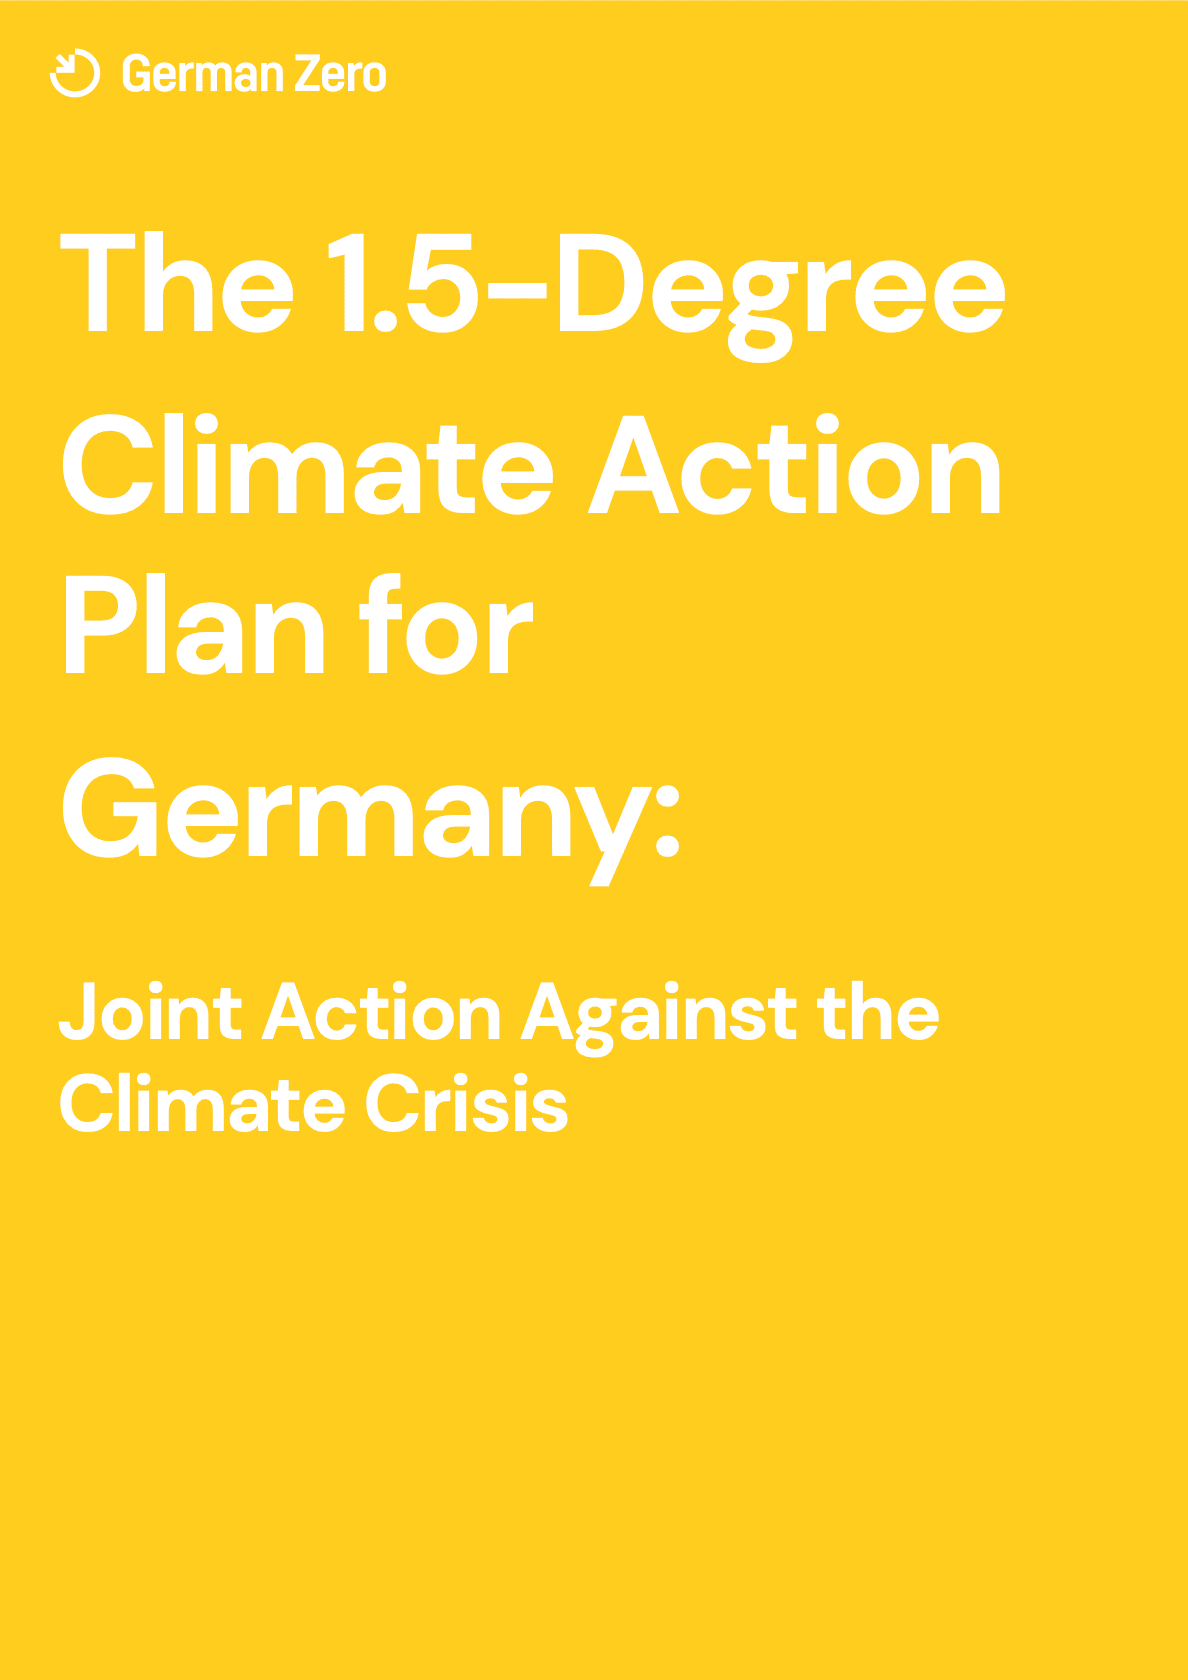 GermanZero: Crafting a climate action masterplan